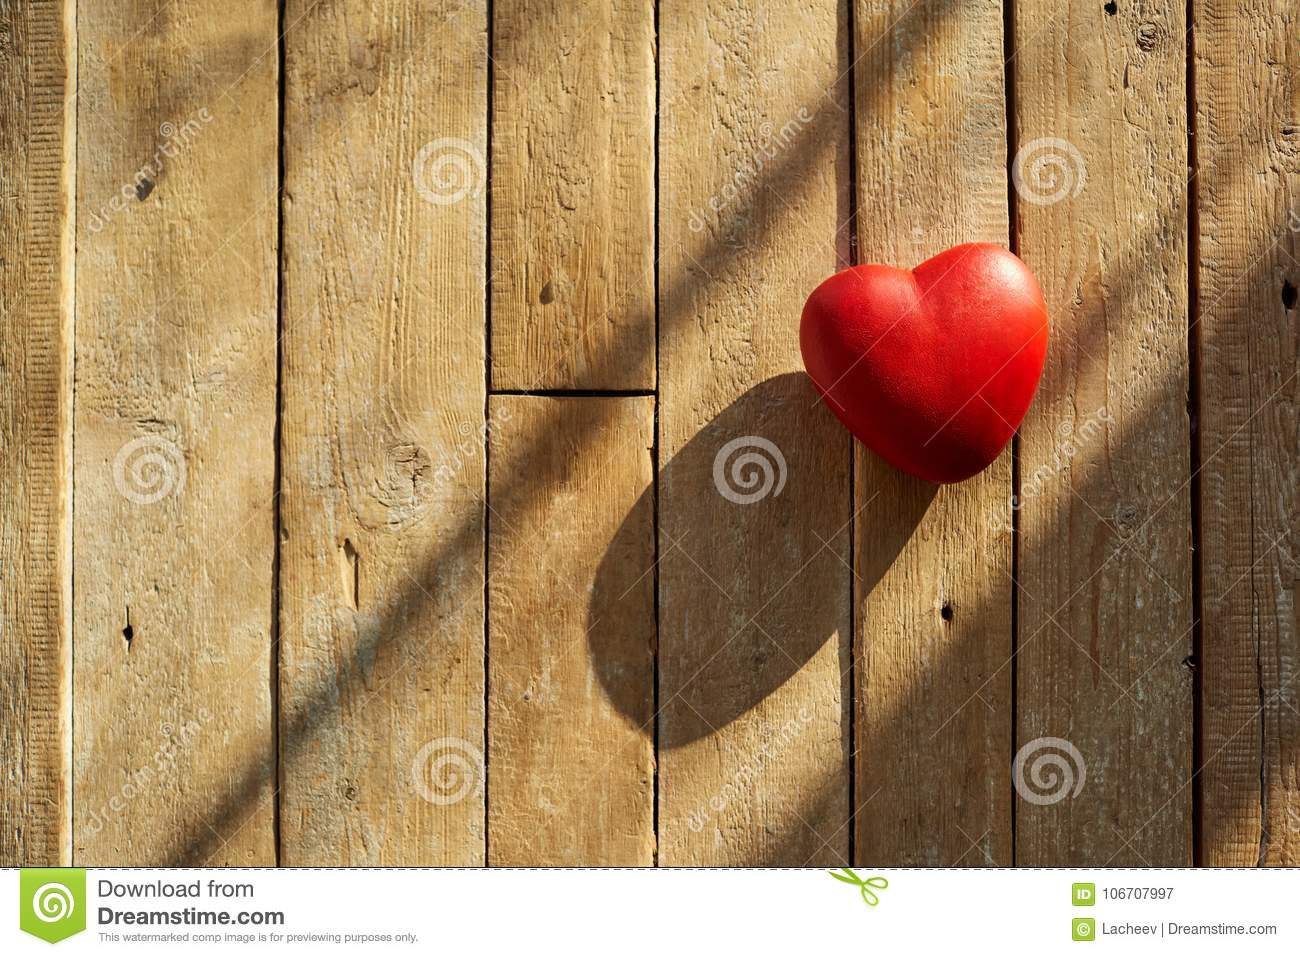 Red heart on a wooden background.